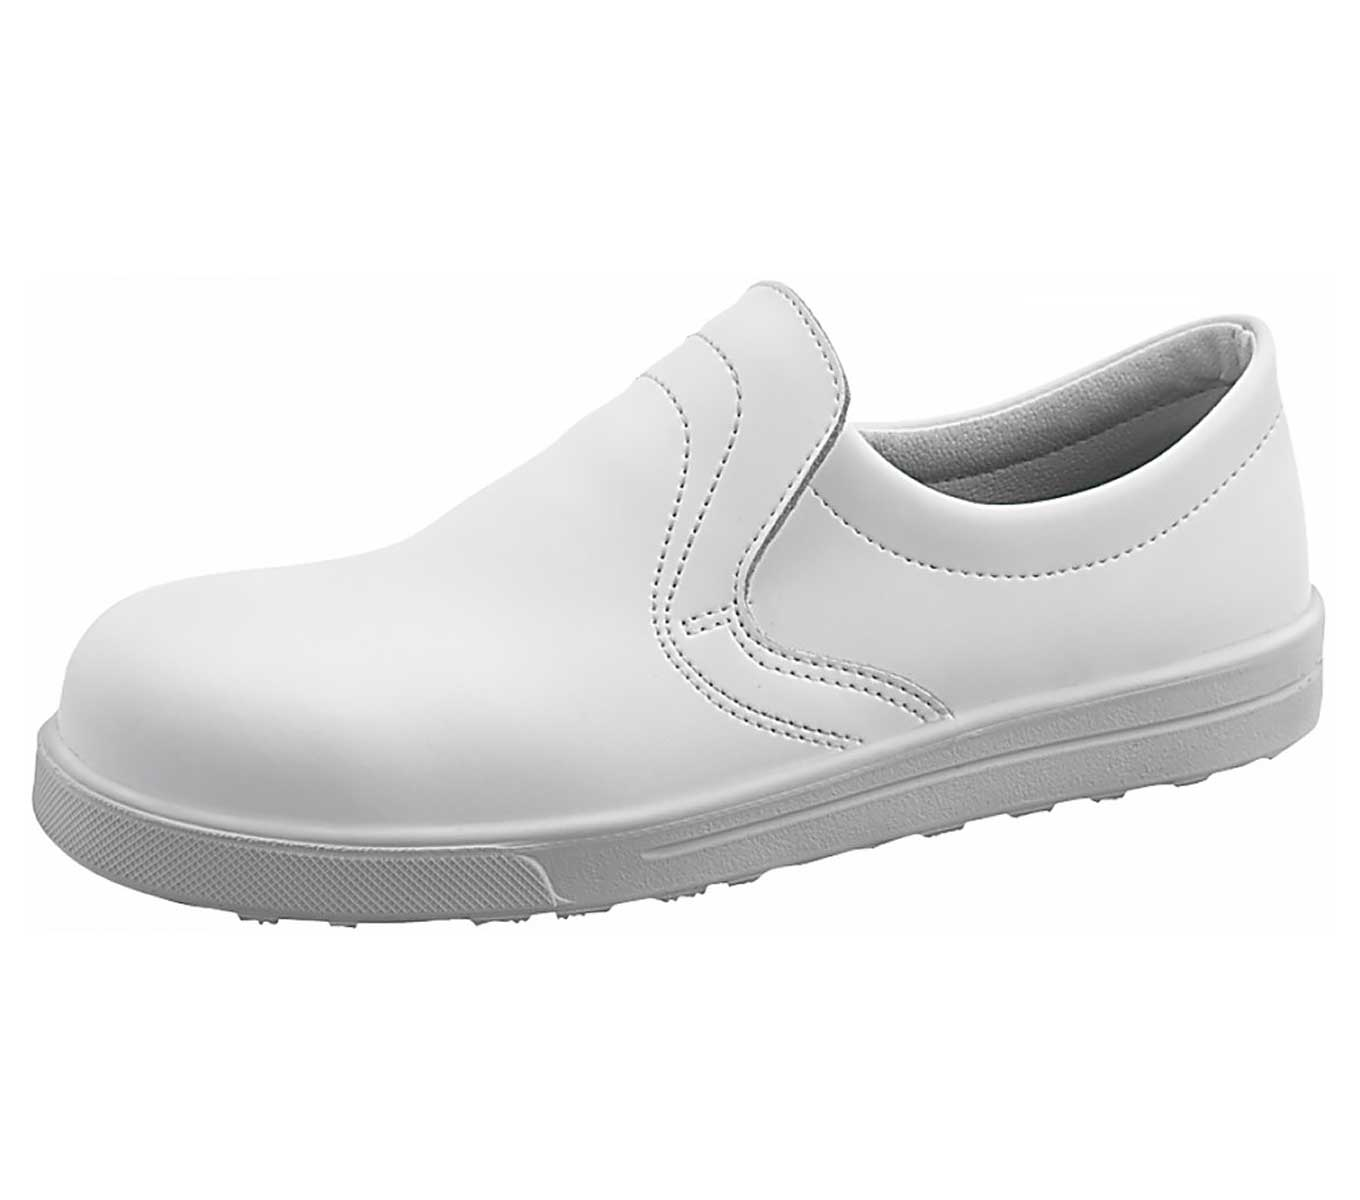 esd safety shoes sievi alfa white s2 microfibre with toecap